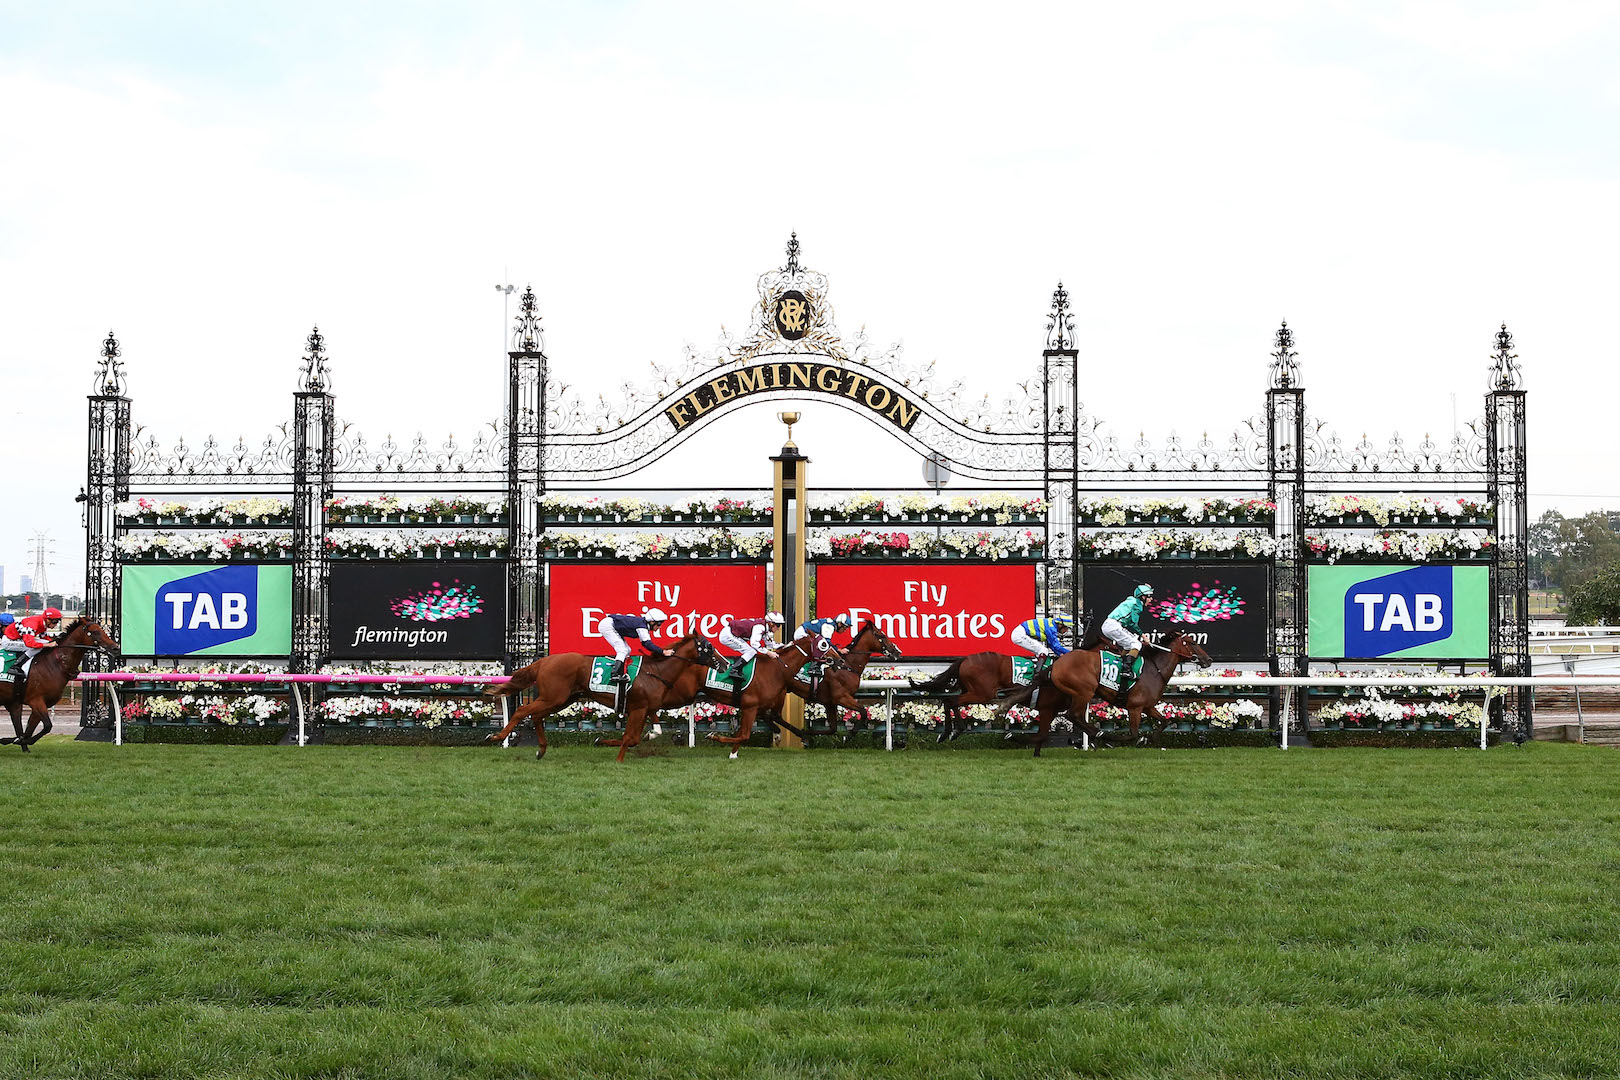 MELBOURNE, AUSTRALIA - MARCH 11: Humidor ridden by Damien Lane crosses the line winning Race 8, the TAB Australian Cup at Flemington Racecourse on March 11, 2017 in Melbourne, Australia. (Photo by Jack Thomas/Getty Images)